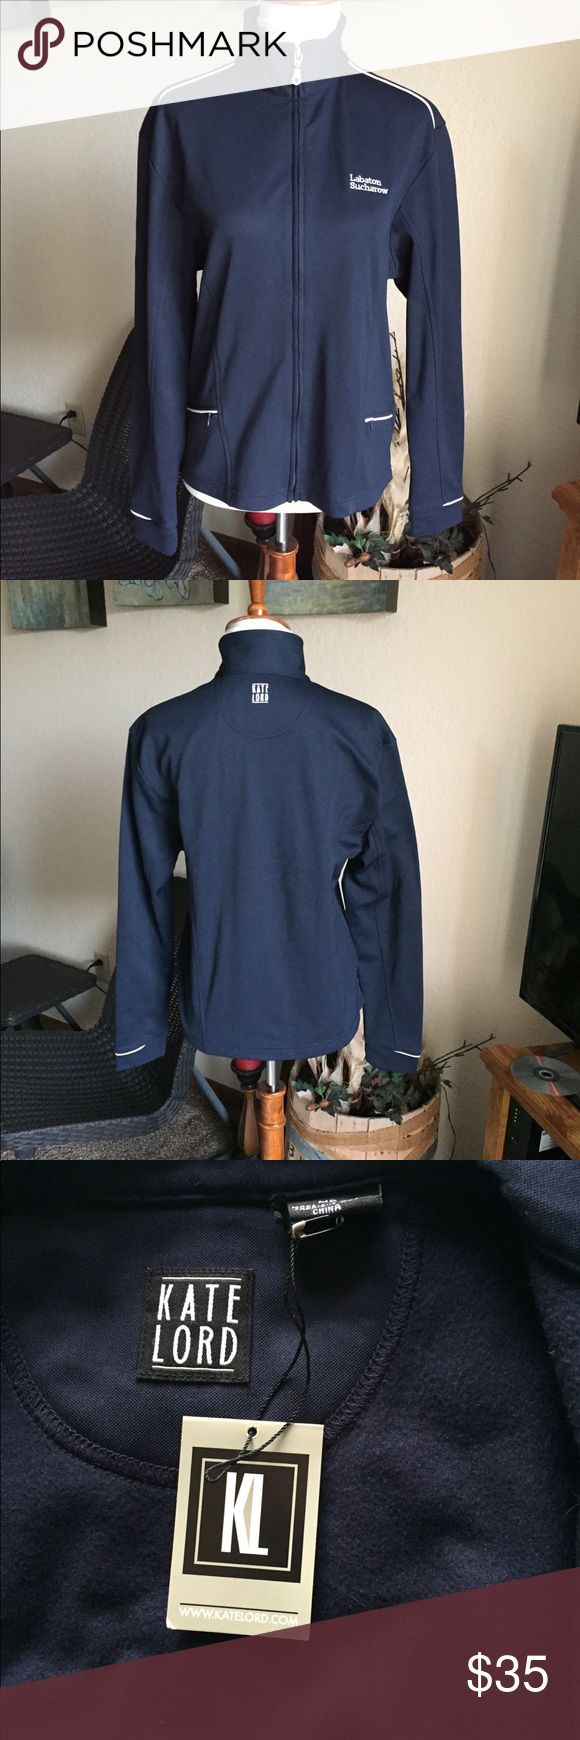 Kate Lord Performance Golf Jacket Brand new Kate Lord performance Golf jacket. Rich navy blue with white detail on the sleeves and fully functional zippered pockets. Nice soft lining for those cool golf days.  (086) Kate Lord Jackets & Coats